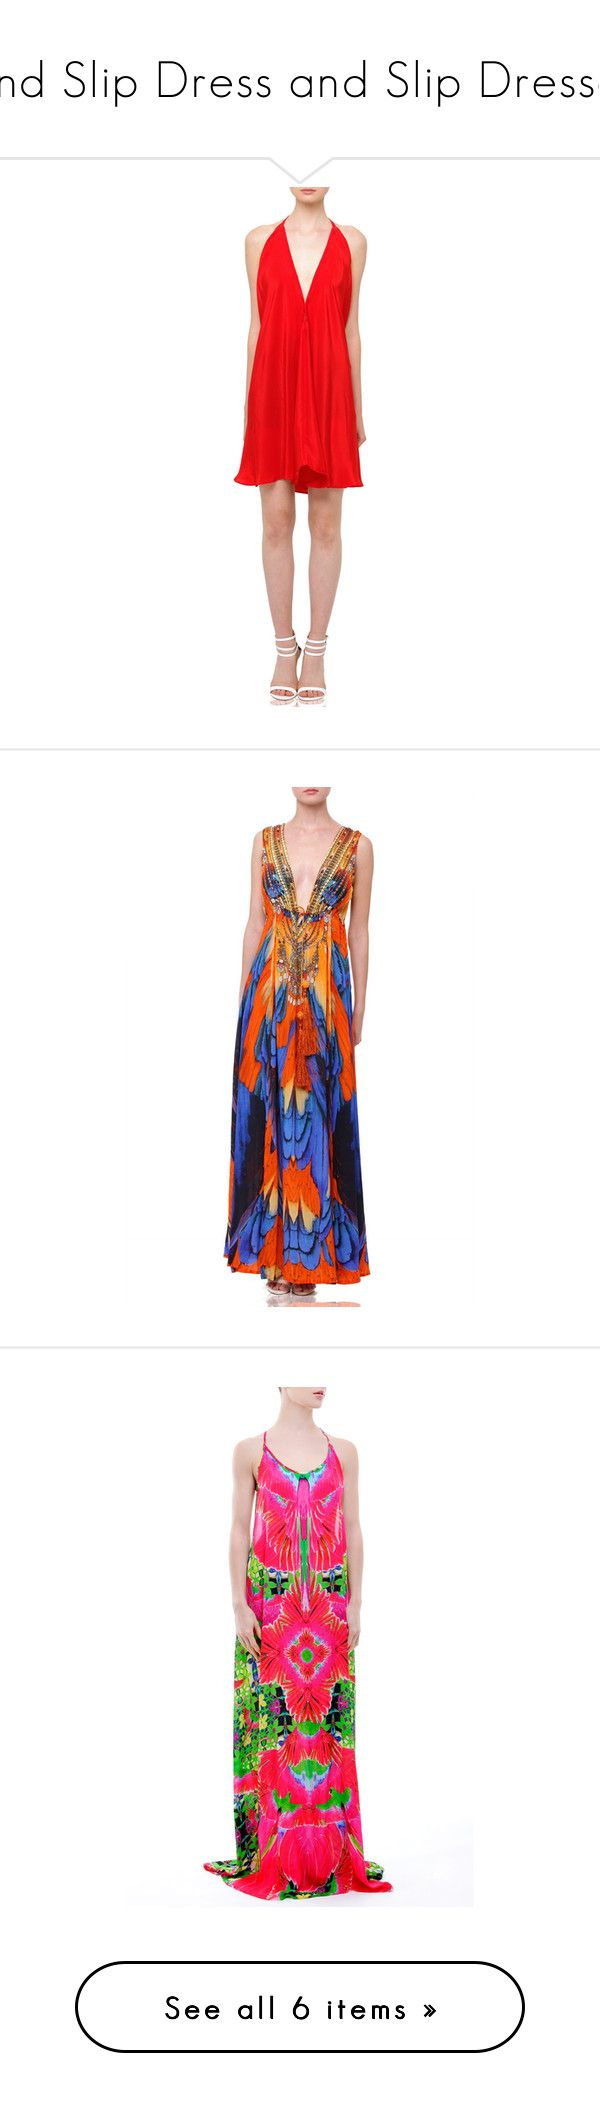 Find Slip Dress and Slip Dresses by shahida-parides on Polyvore featuring women's fashion, dresses, red color dress, short dress, silk dress, animal print dress, red summer dress, day summer dresses, deep v neck red dress and red silk dress